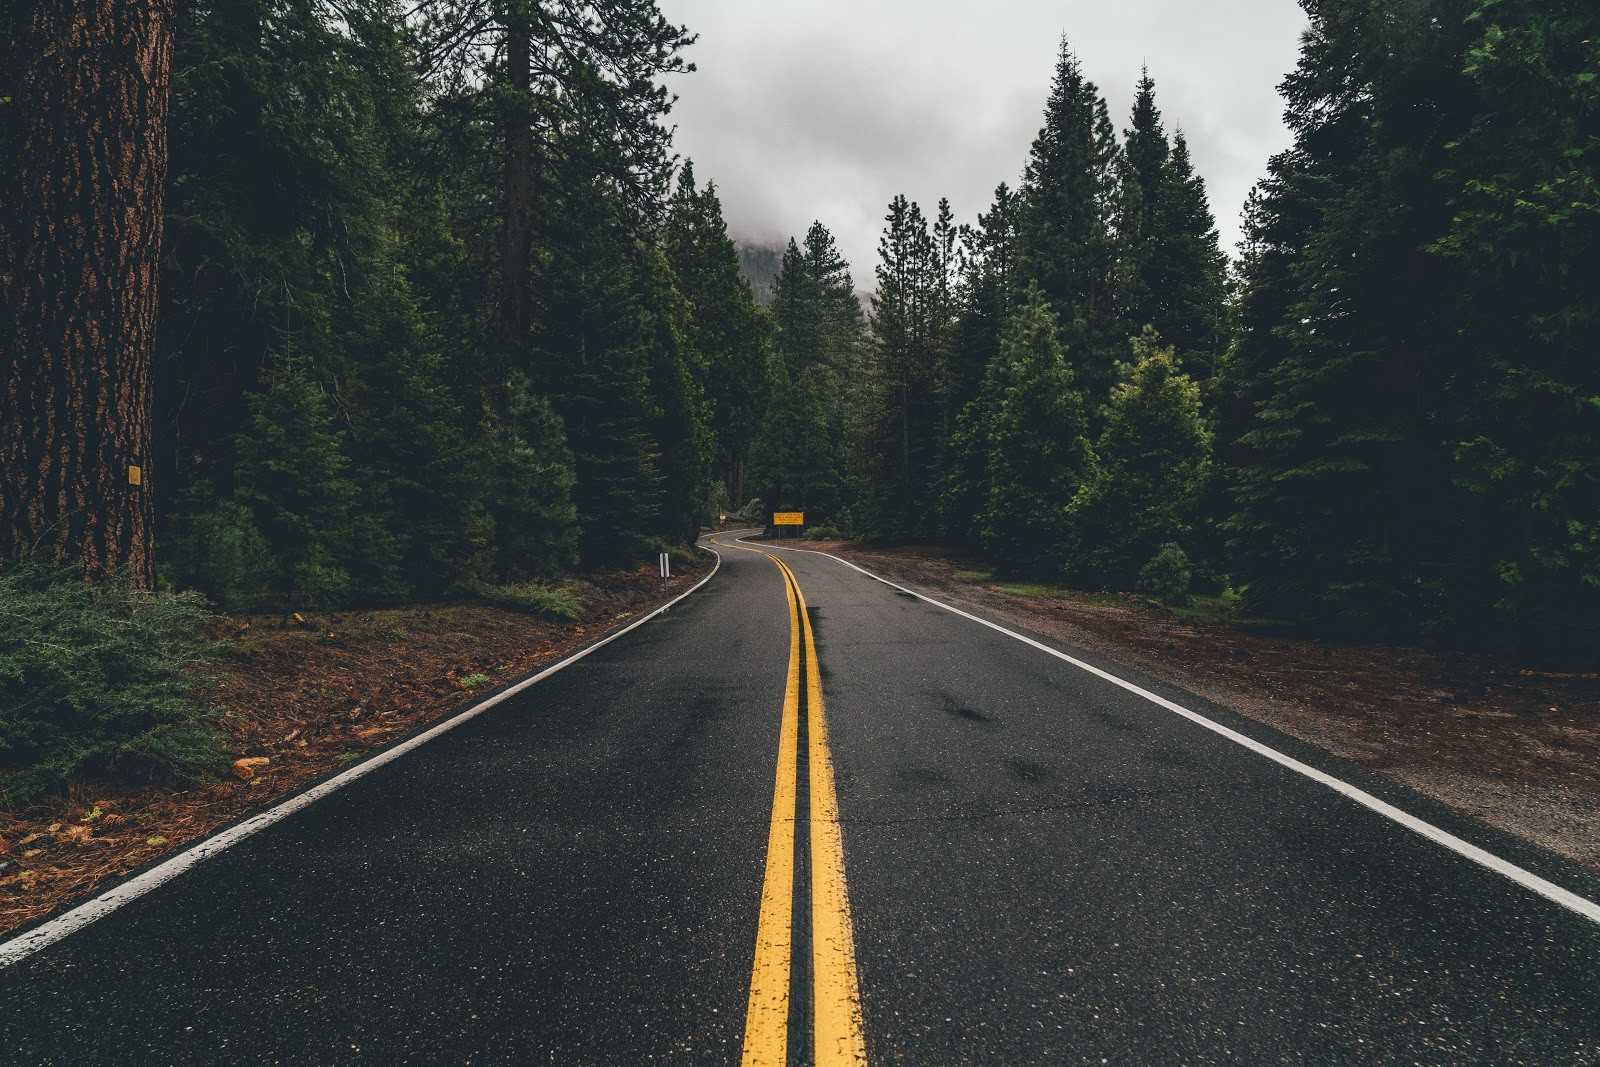 An empty paved road going through a beautiful forested area.